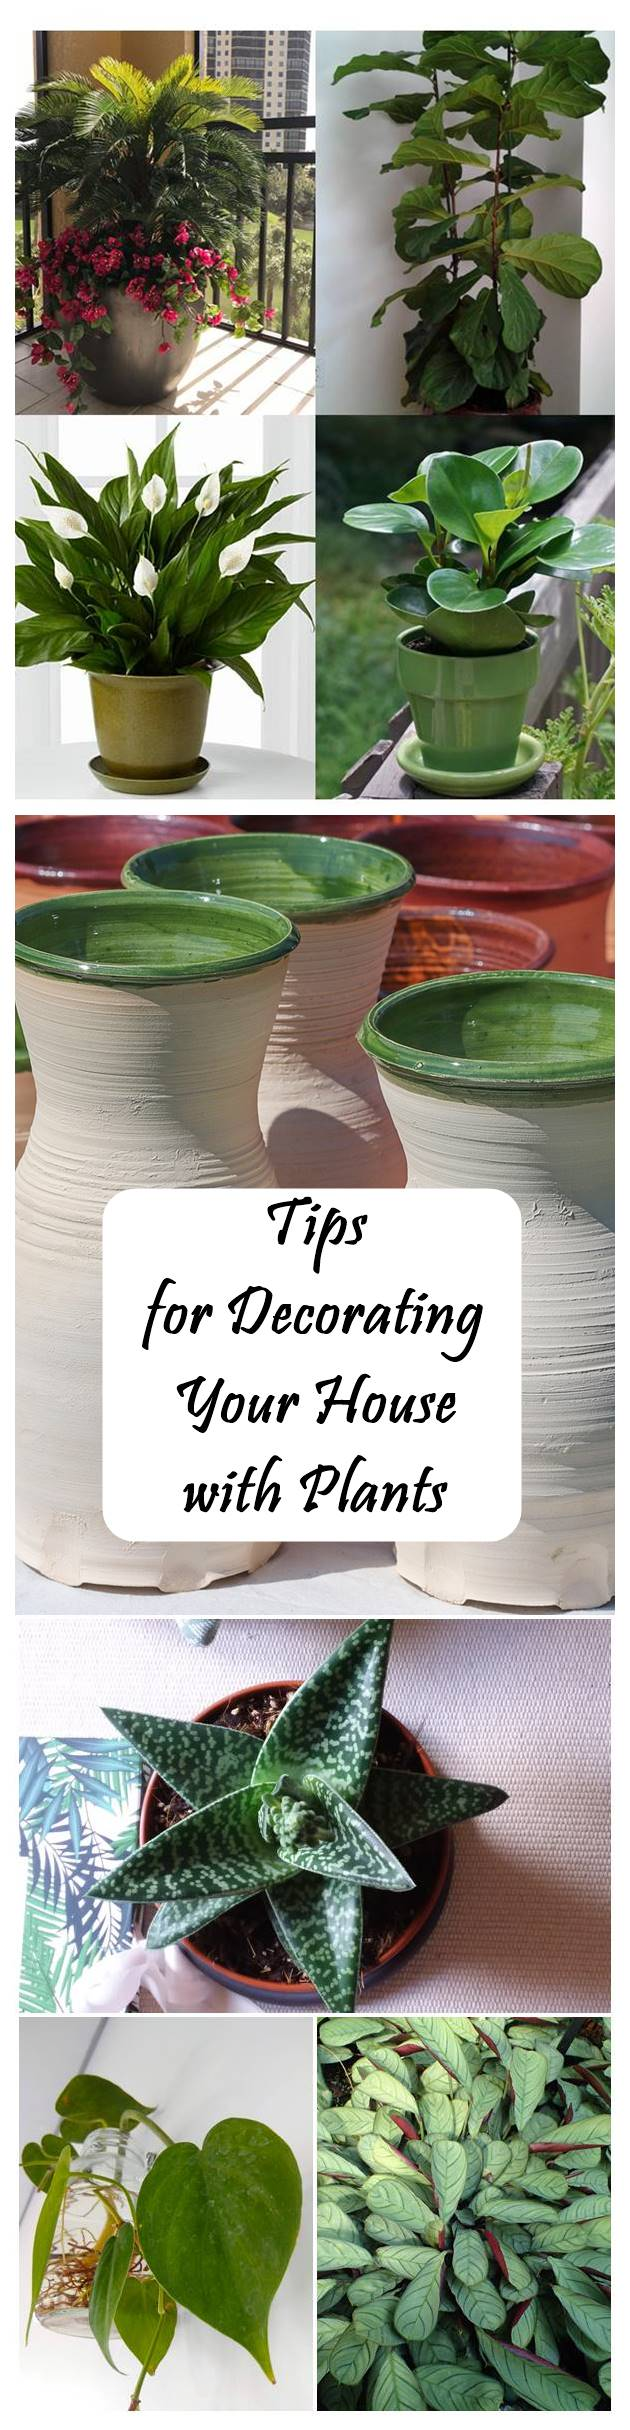 Tips for Decorating Your House with Plants